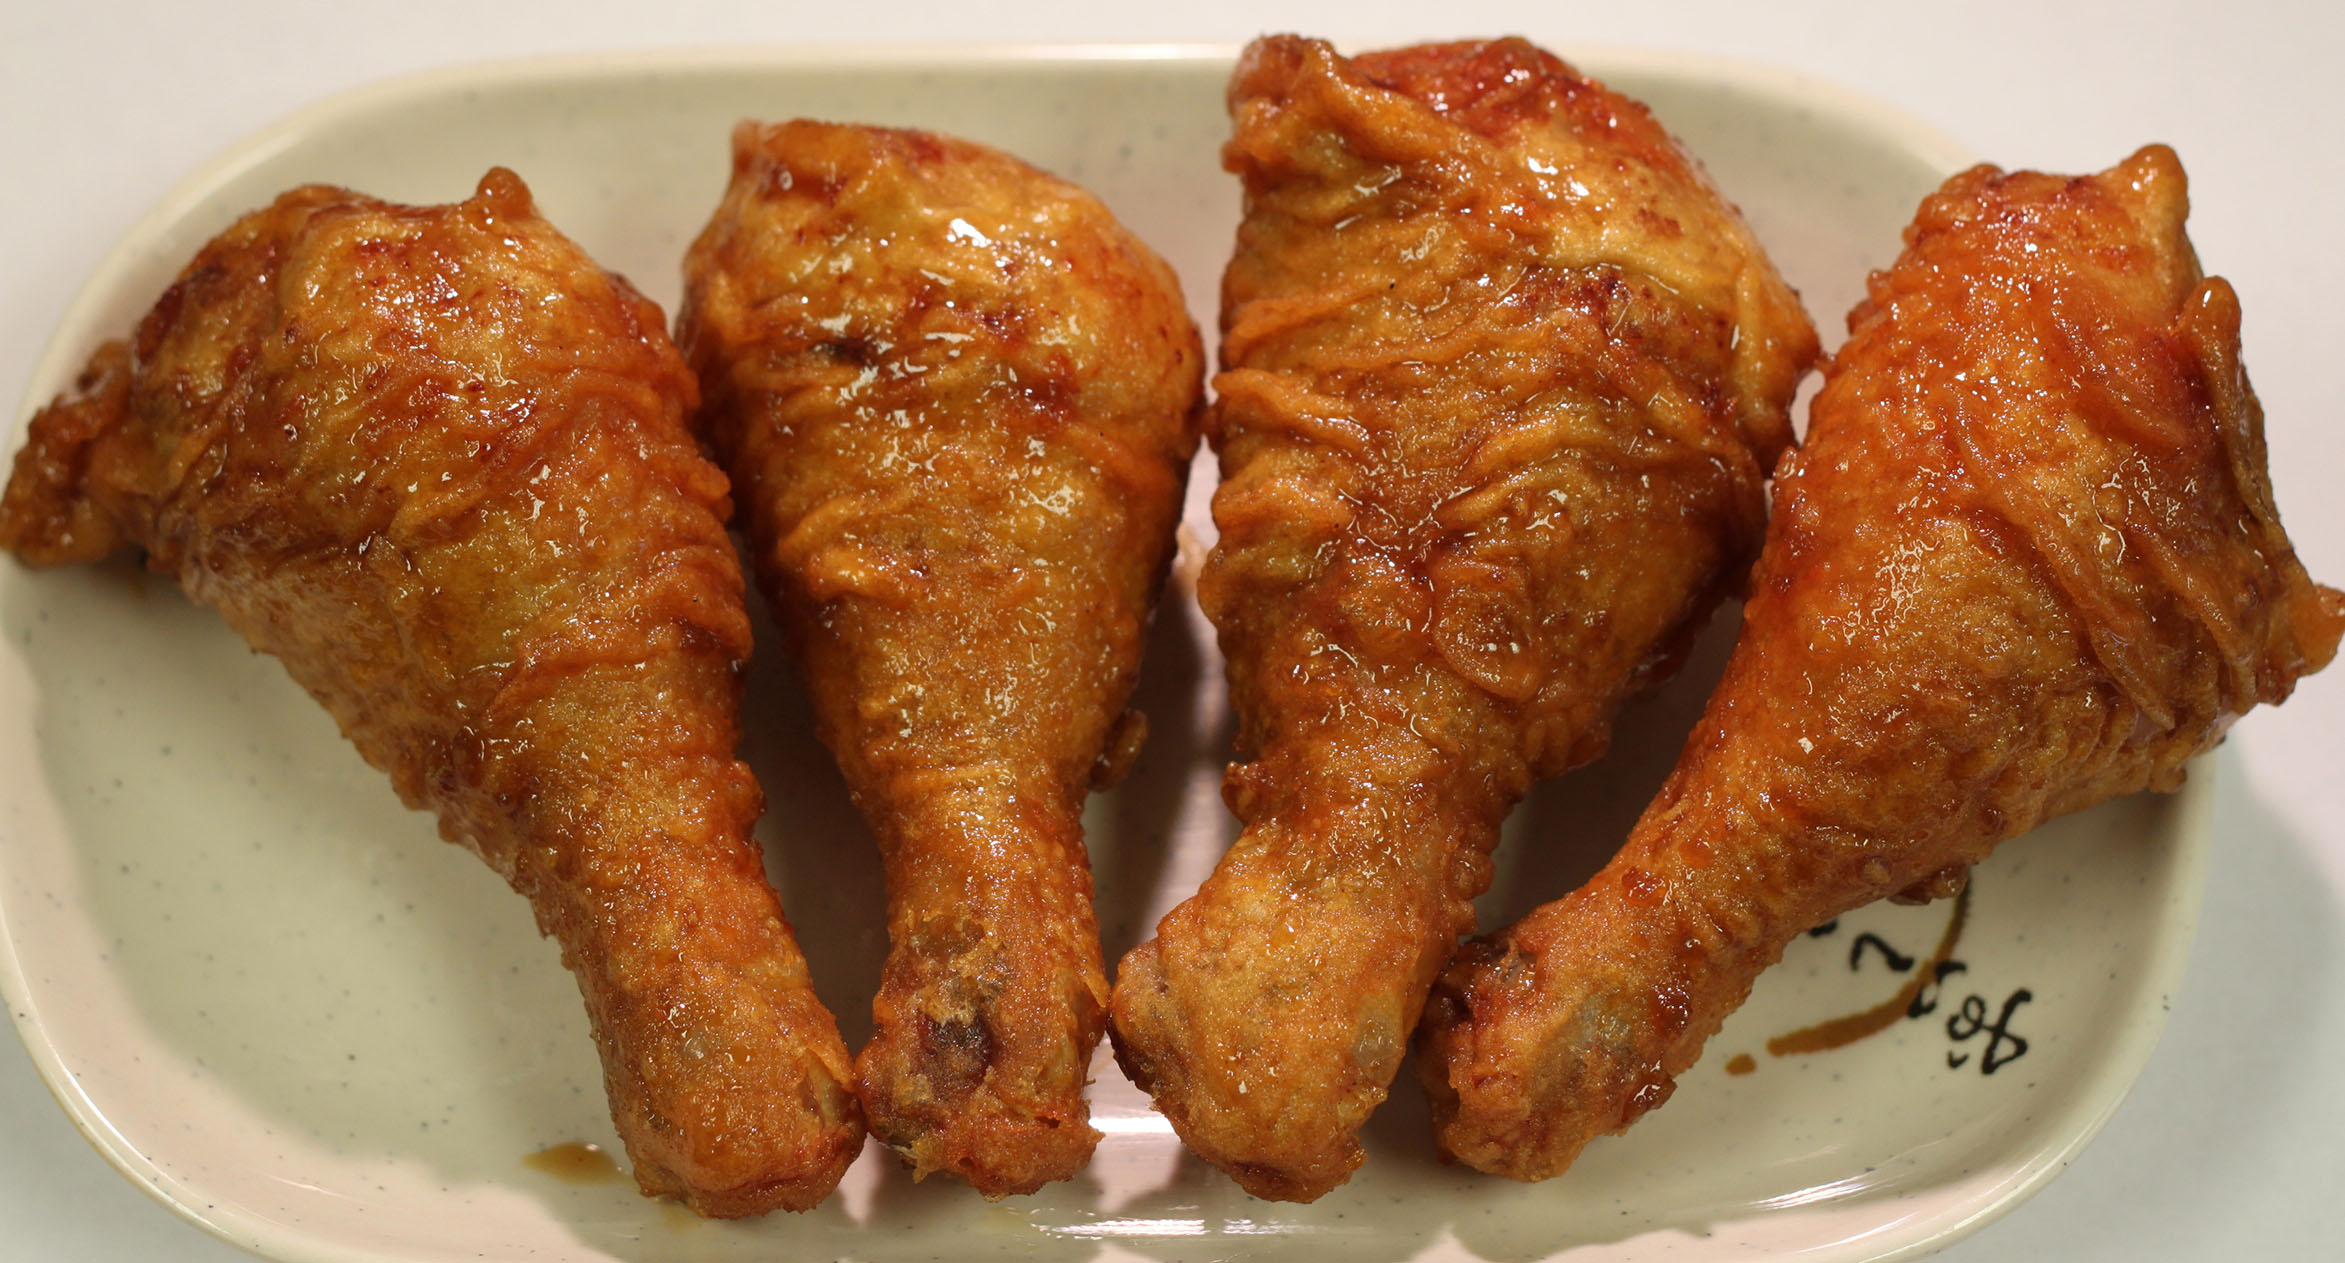 Fried Chicken High Quality Wallpapers